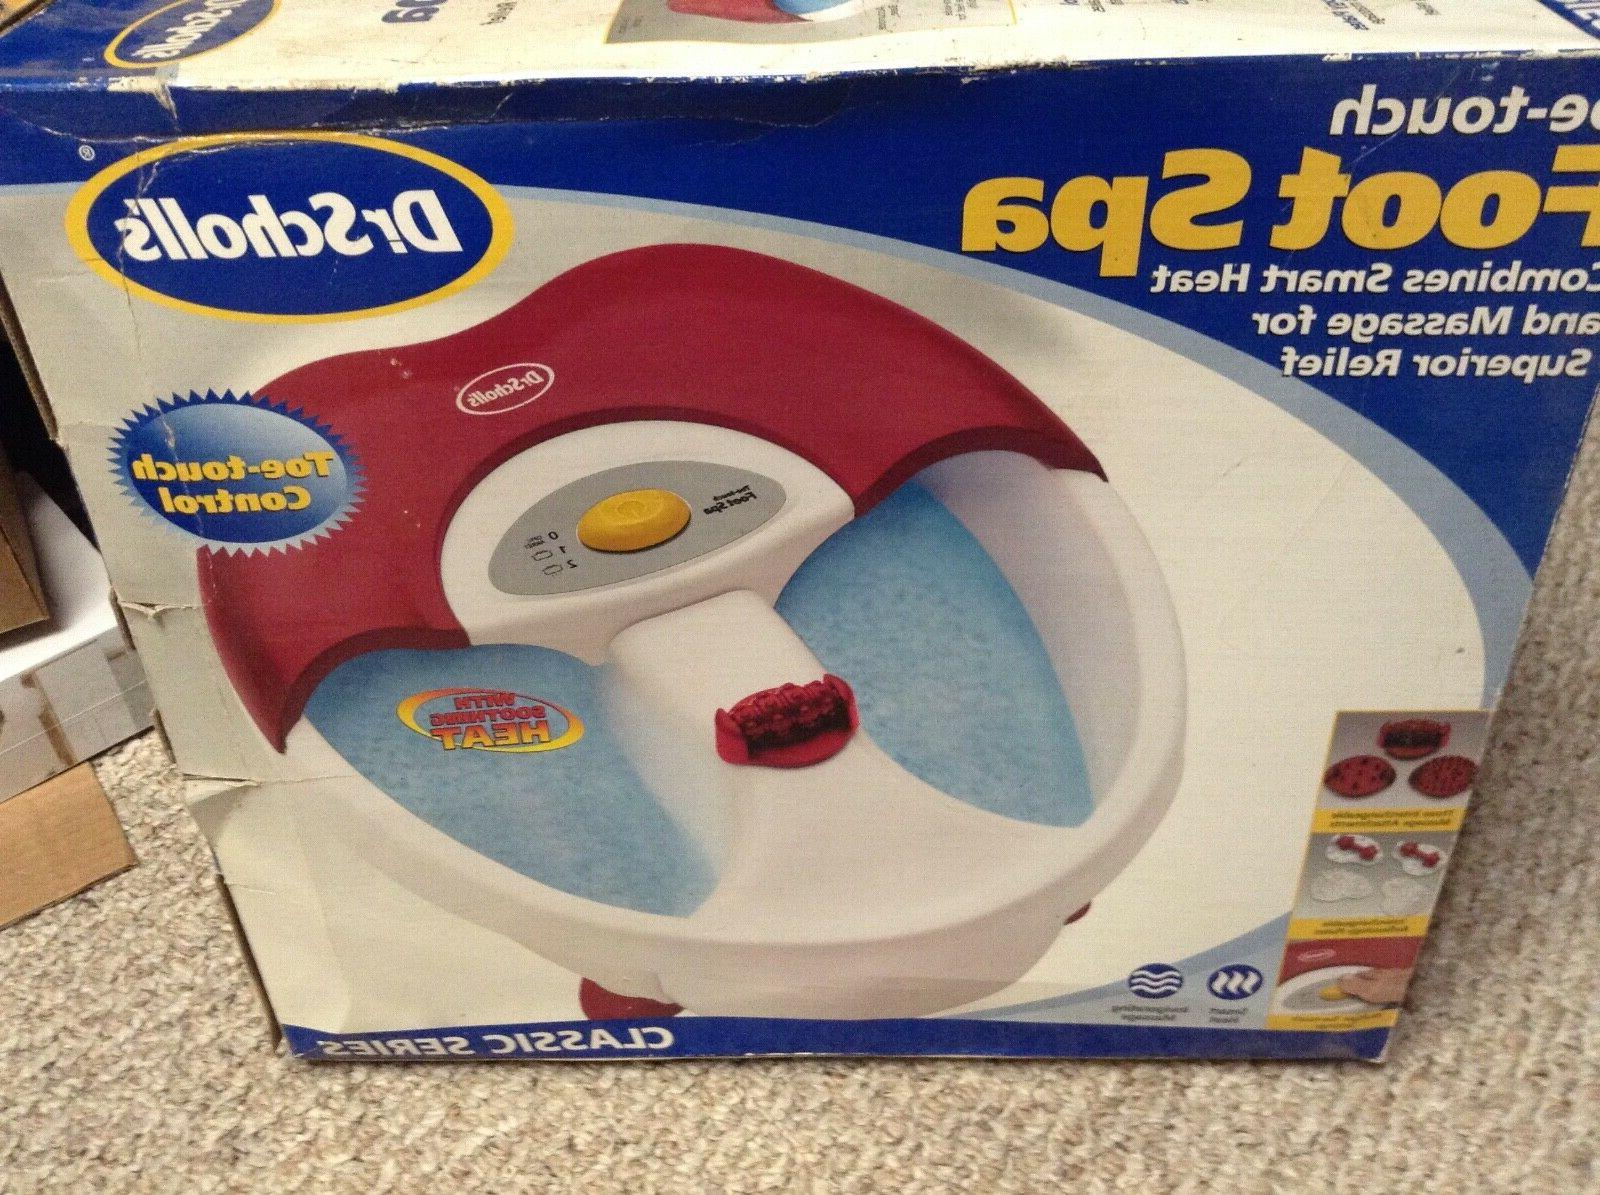 dr scholls toe touch foot spa red